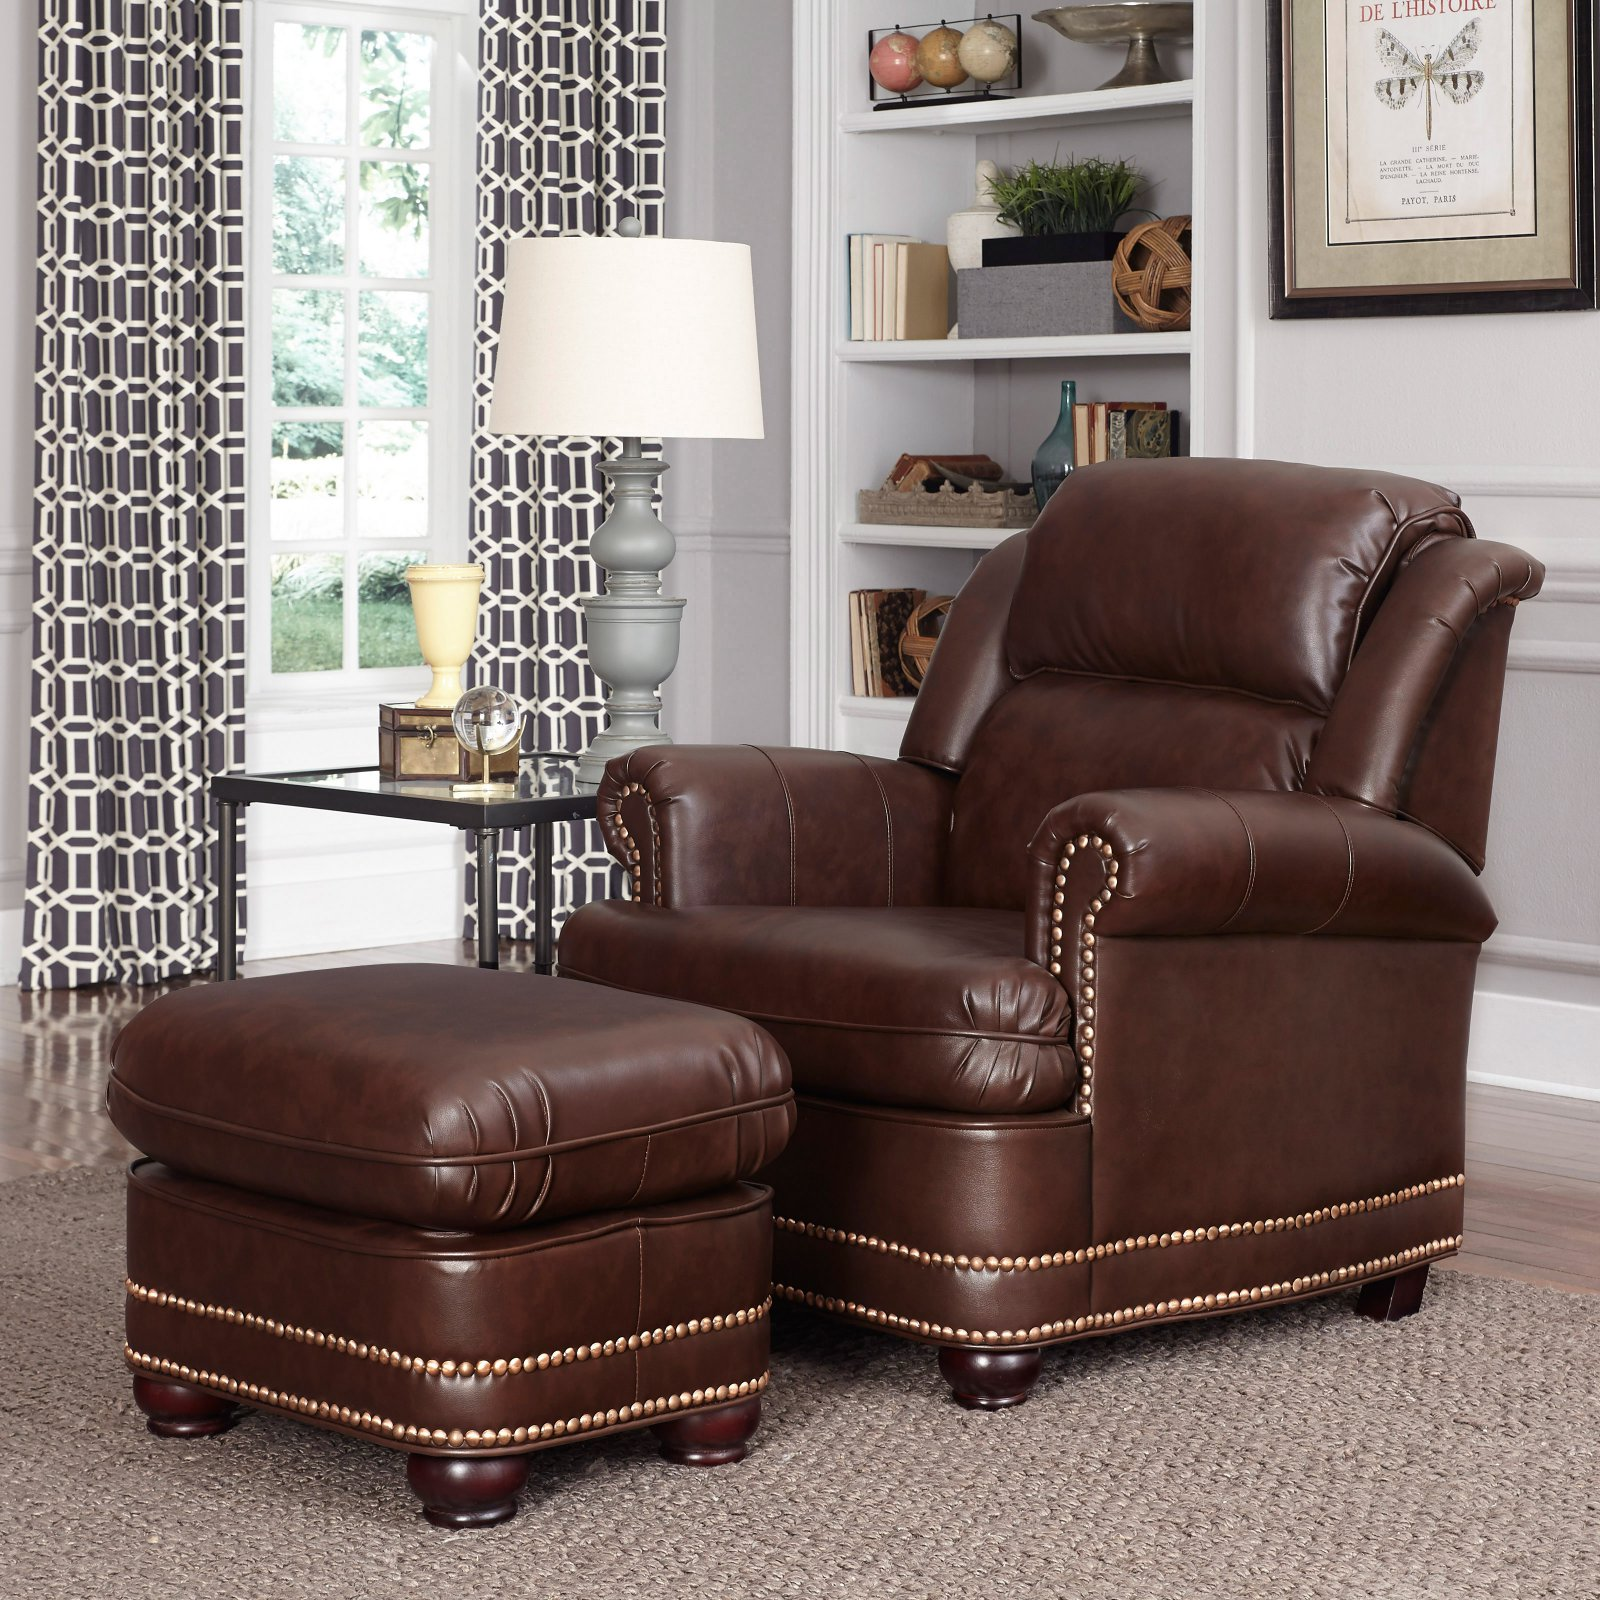 Charmant Home Styles Beau Stationary Faux Leather Chair And Ottoman, Brown